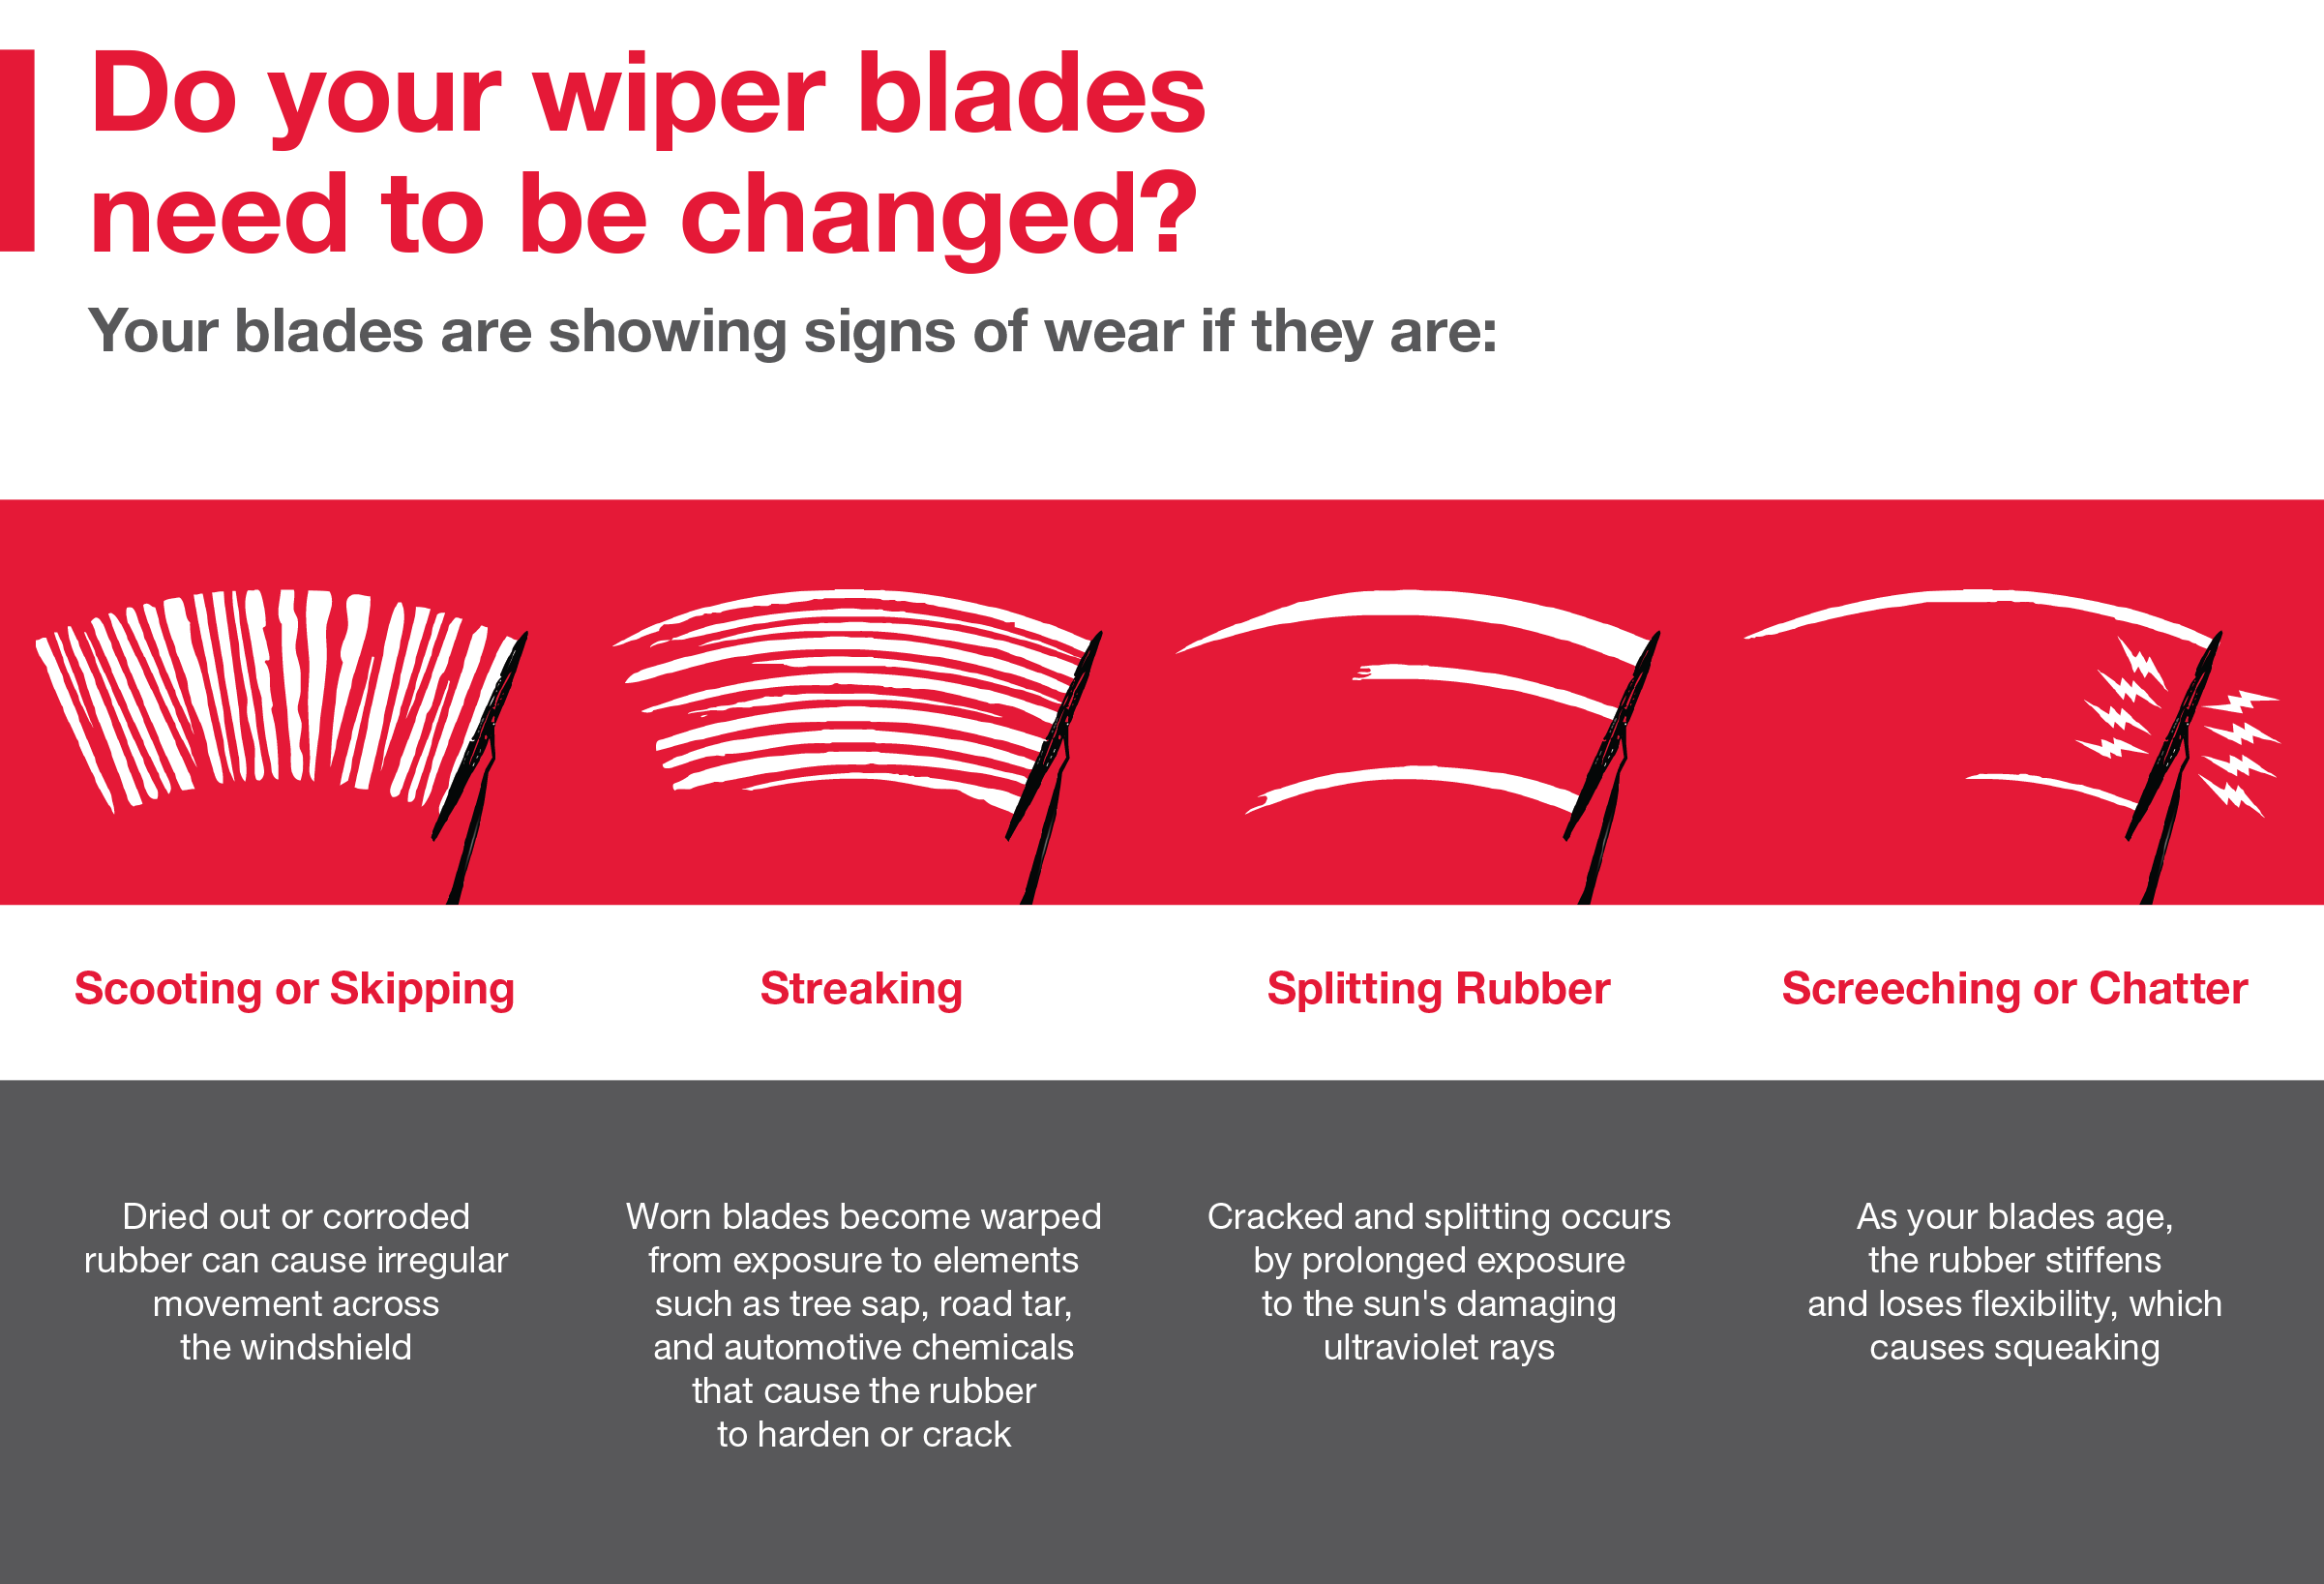 Do your wiper blades need to be changed? Call your local dealer for more info: 804.796.1800